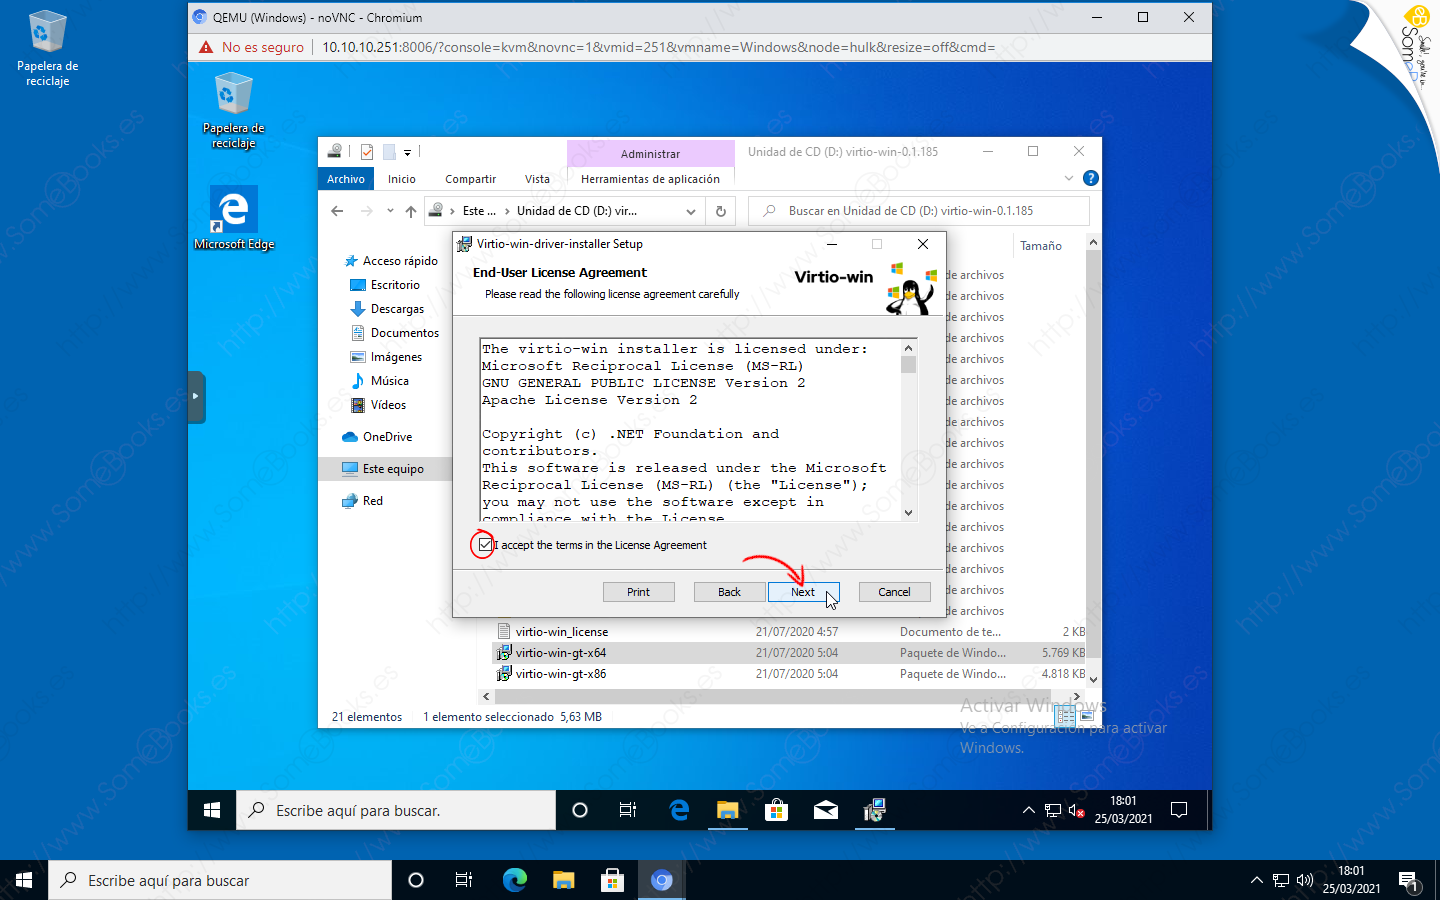 Instalar-Windows-10-en-una-maquina-virtual-sobre-Proxmox-VE-021